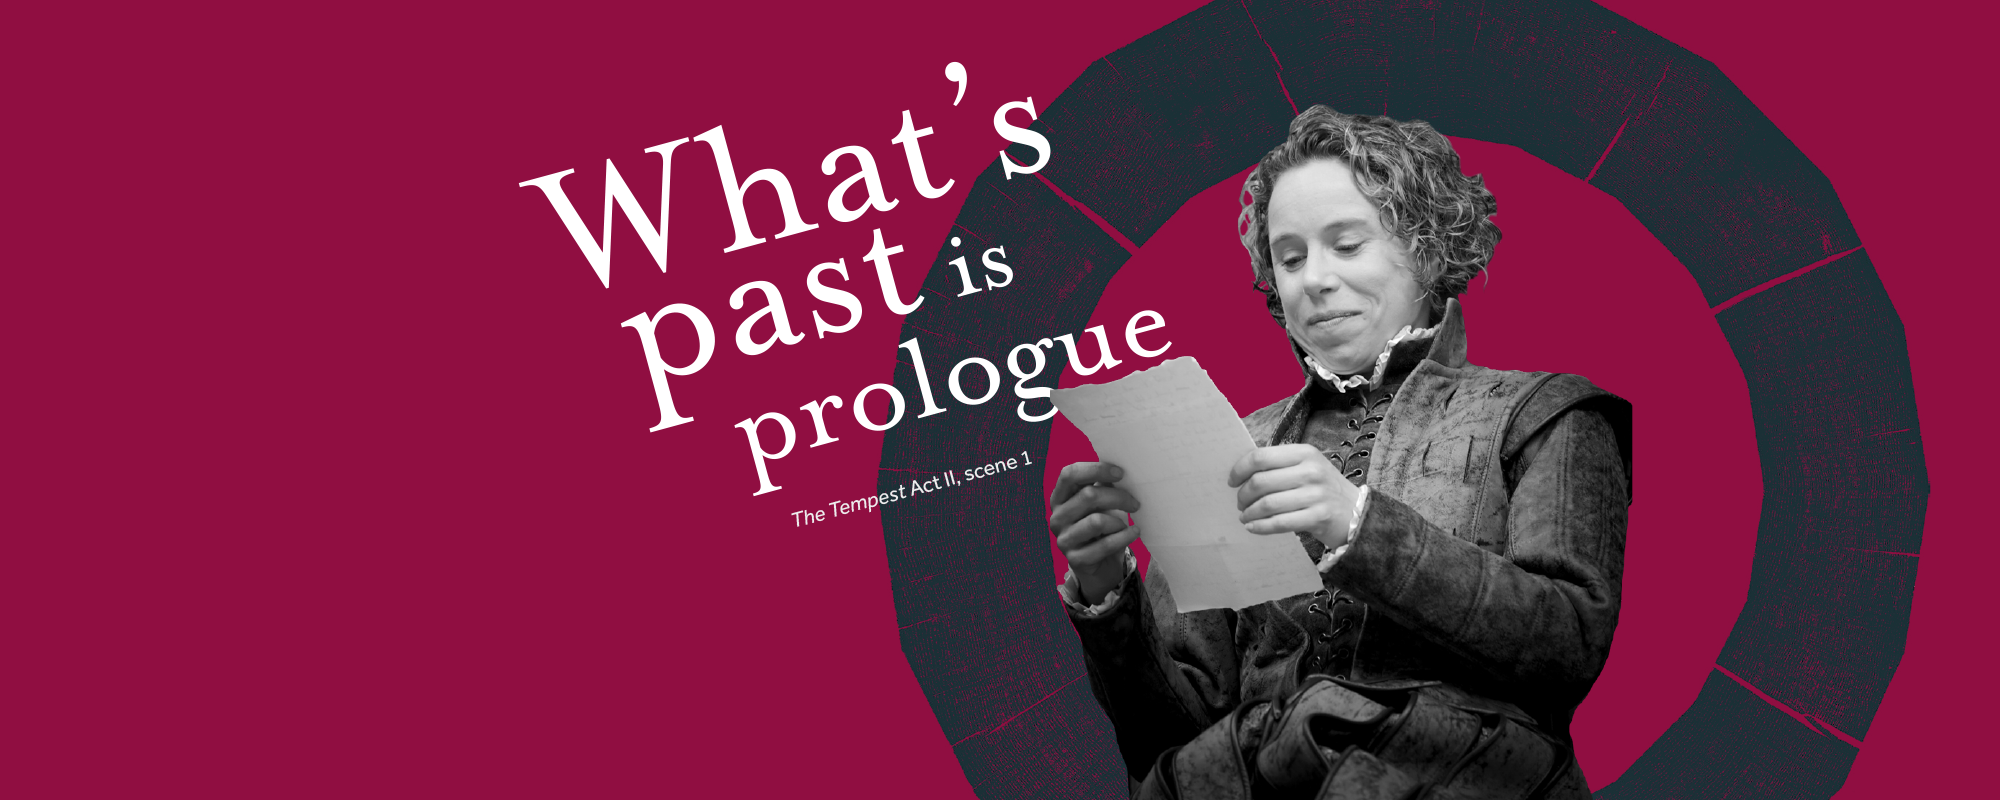 A solid purple background featuring the Globe circular logo, with a black and white photograph of Michelle Terry reading a letter, alongside the quote: What's past is prologue